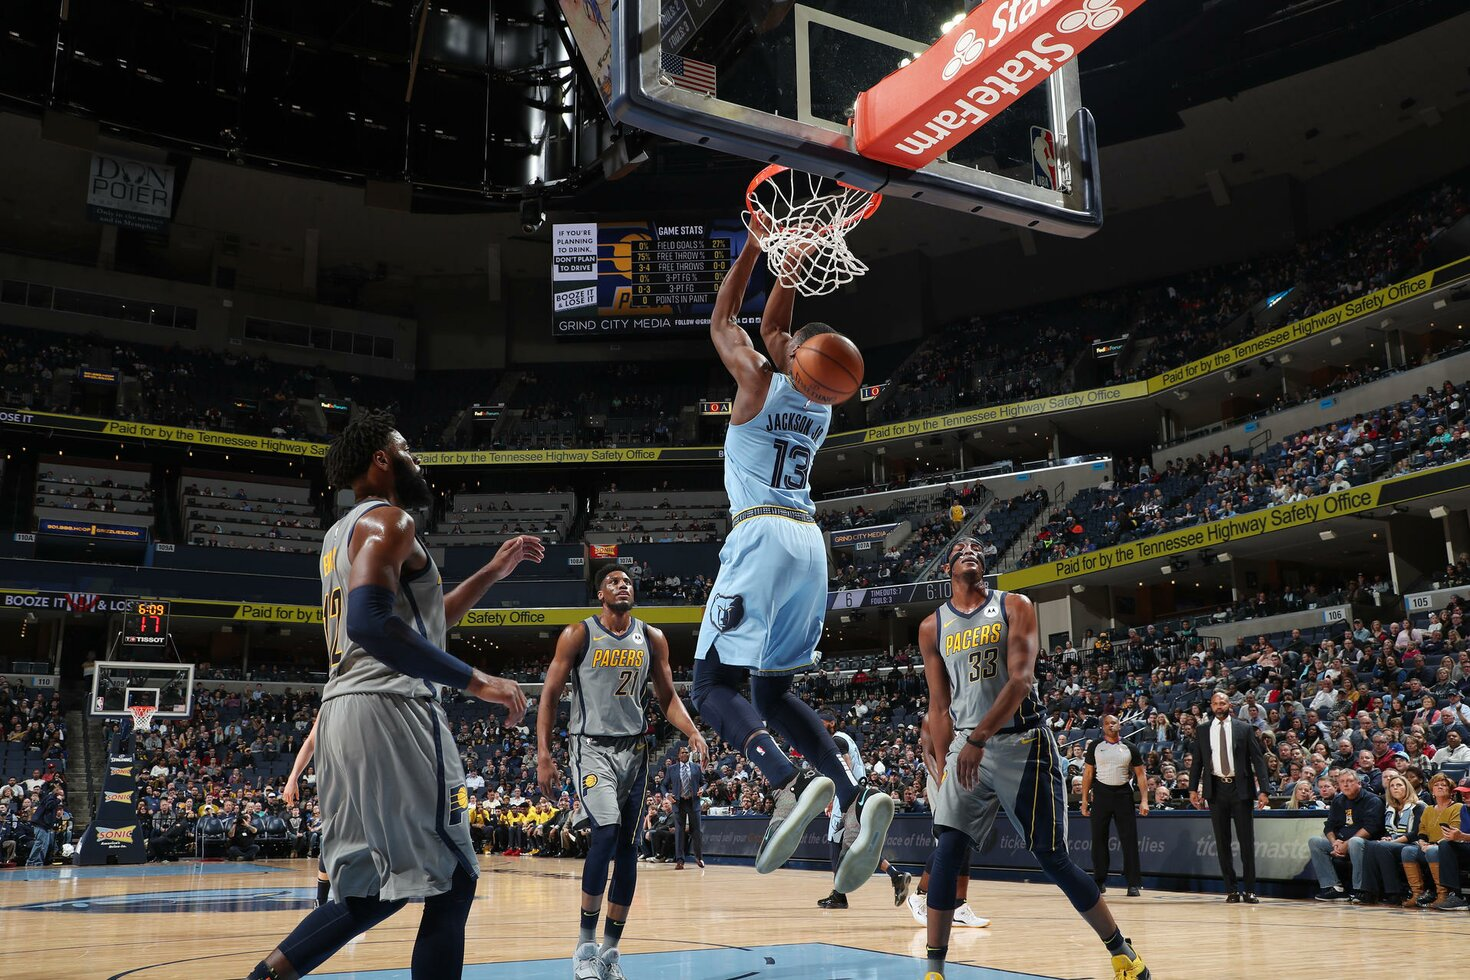 MEMPHIS, TN - JANUARY 26:  Jaren Jackson Jr. #13 of the Memphis Grizzlies backwards dunks against the Indiana Pacers on January 26, 2019 at FedExForum in Memphis, Tennessee.